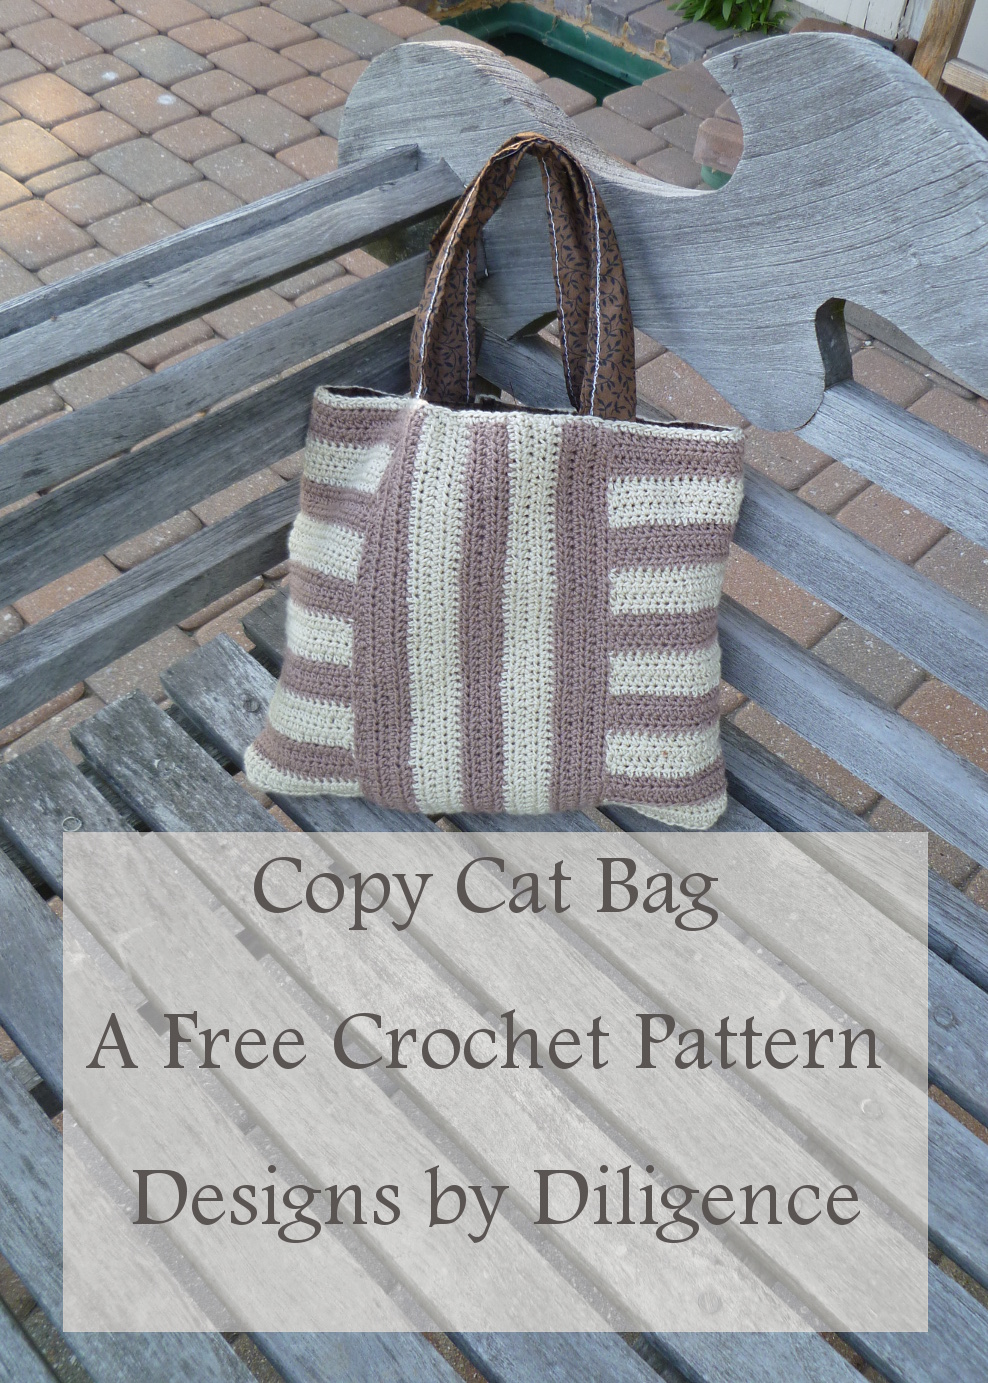 Designs by Diligence: Copycat Striped Bag